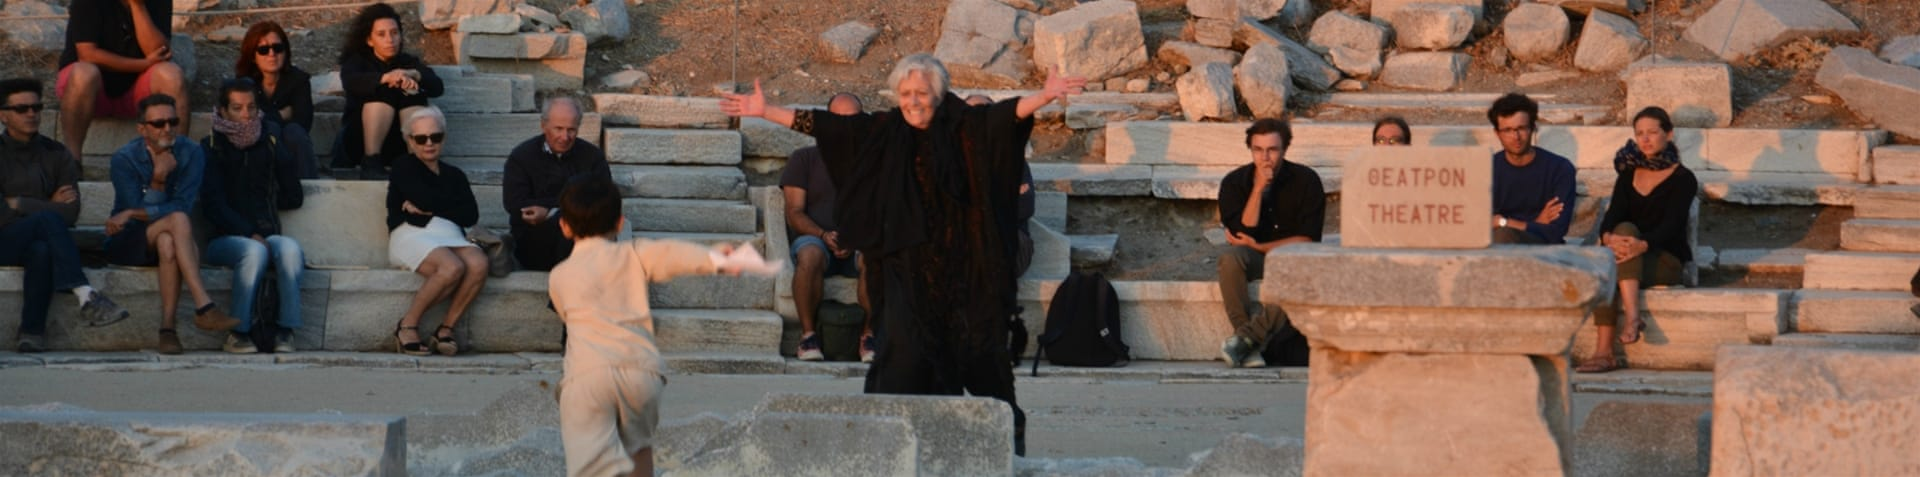 """Hecuba, a refugee"" is performed on the Greek island of Delos [Department of antiquities of the Cyclades/Al Jazeera]"